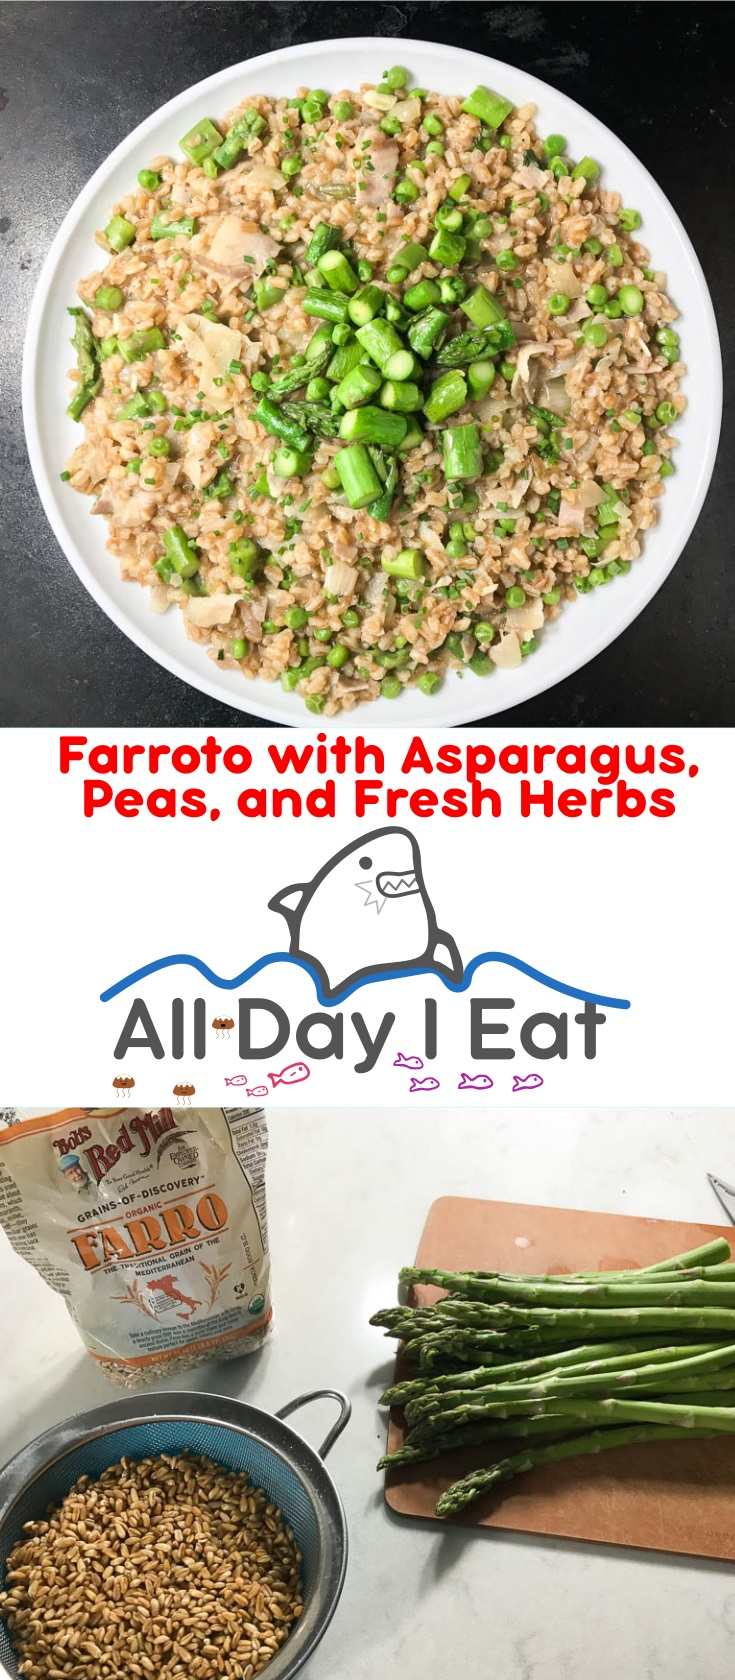 Farroto with asparagus, peas, and fresh herbs is the perfect weeknight meal for those who love the little grain called farro. The earthy nutty flavor of farro is complemented by blanched, slightly crunchy green asparagus, green peas, and prosciutto. This is definitely one of my favorite farro recipes! | www.alldayieat.com